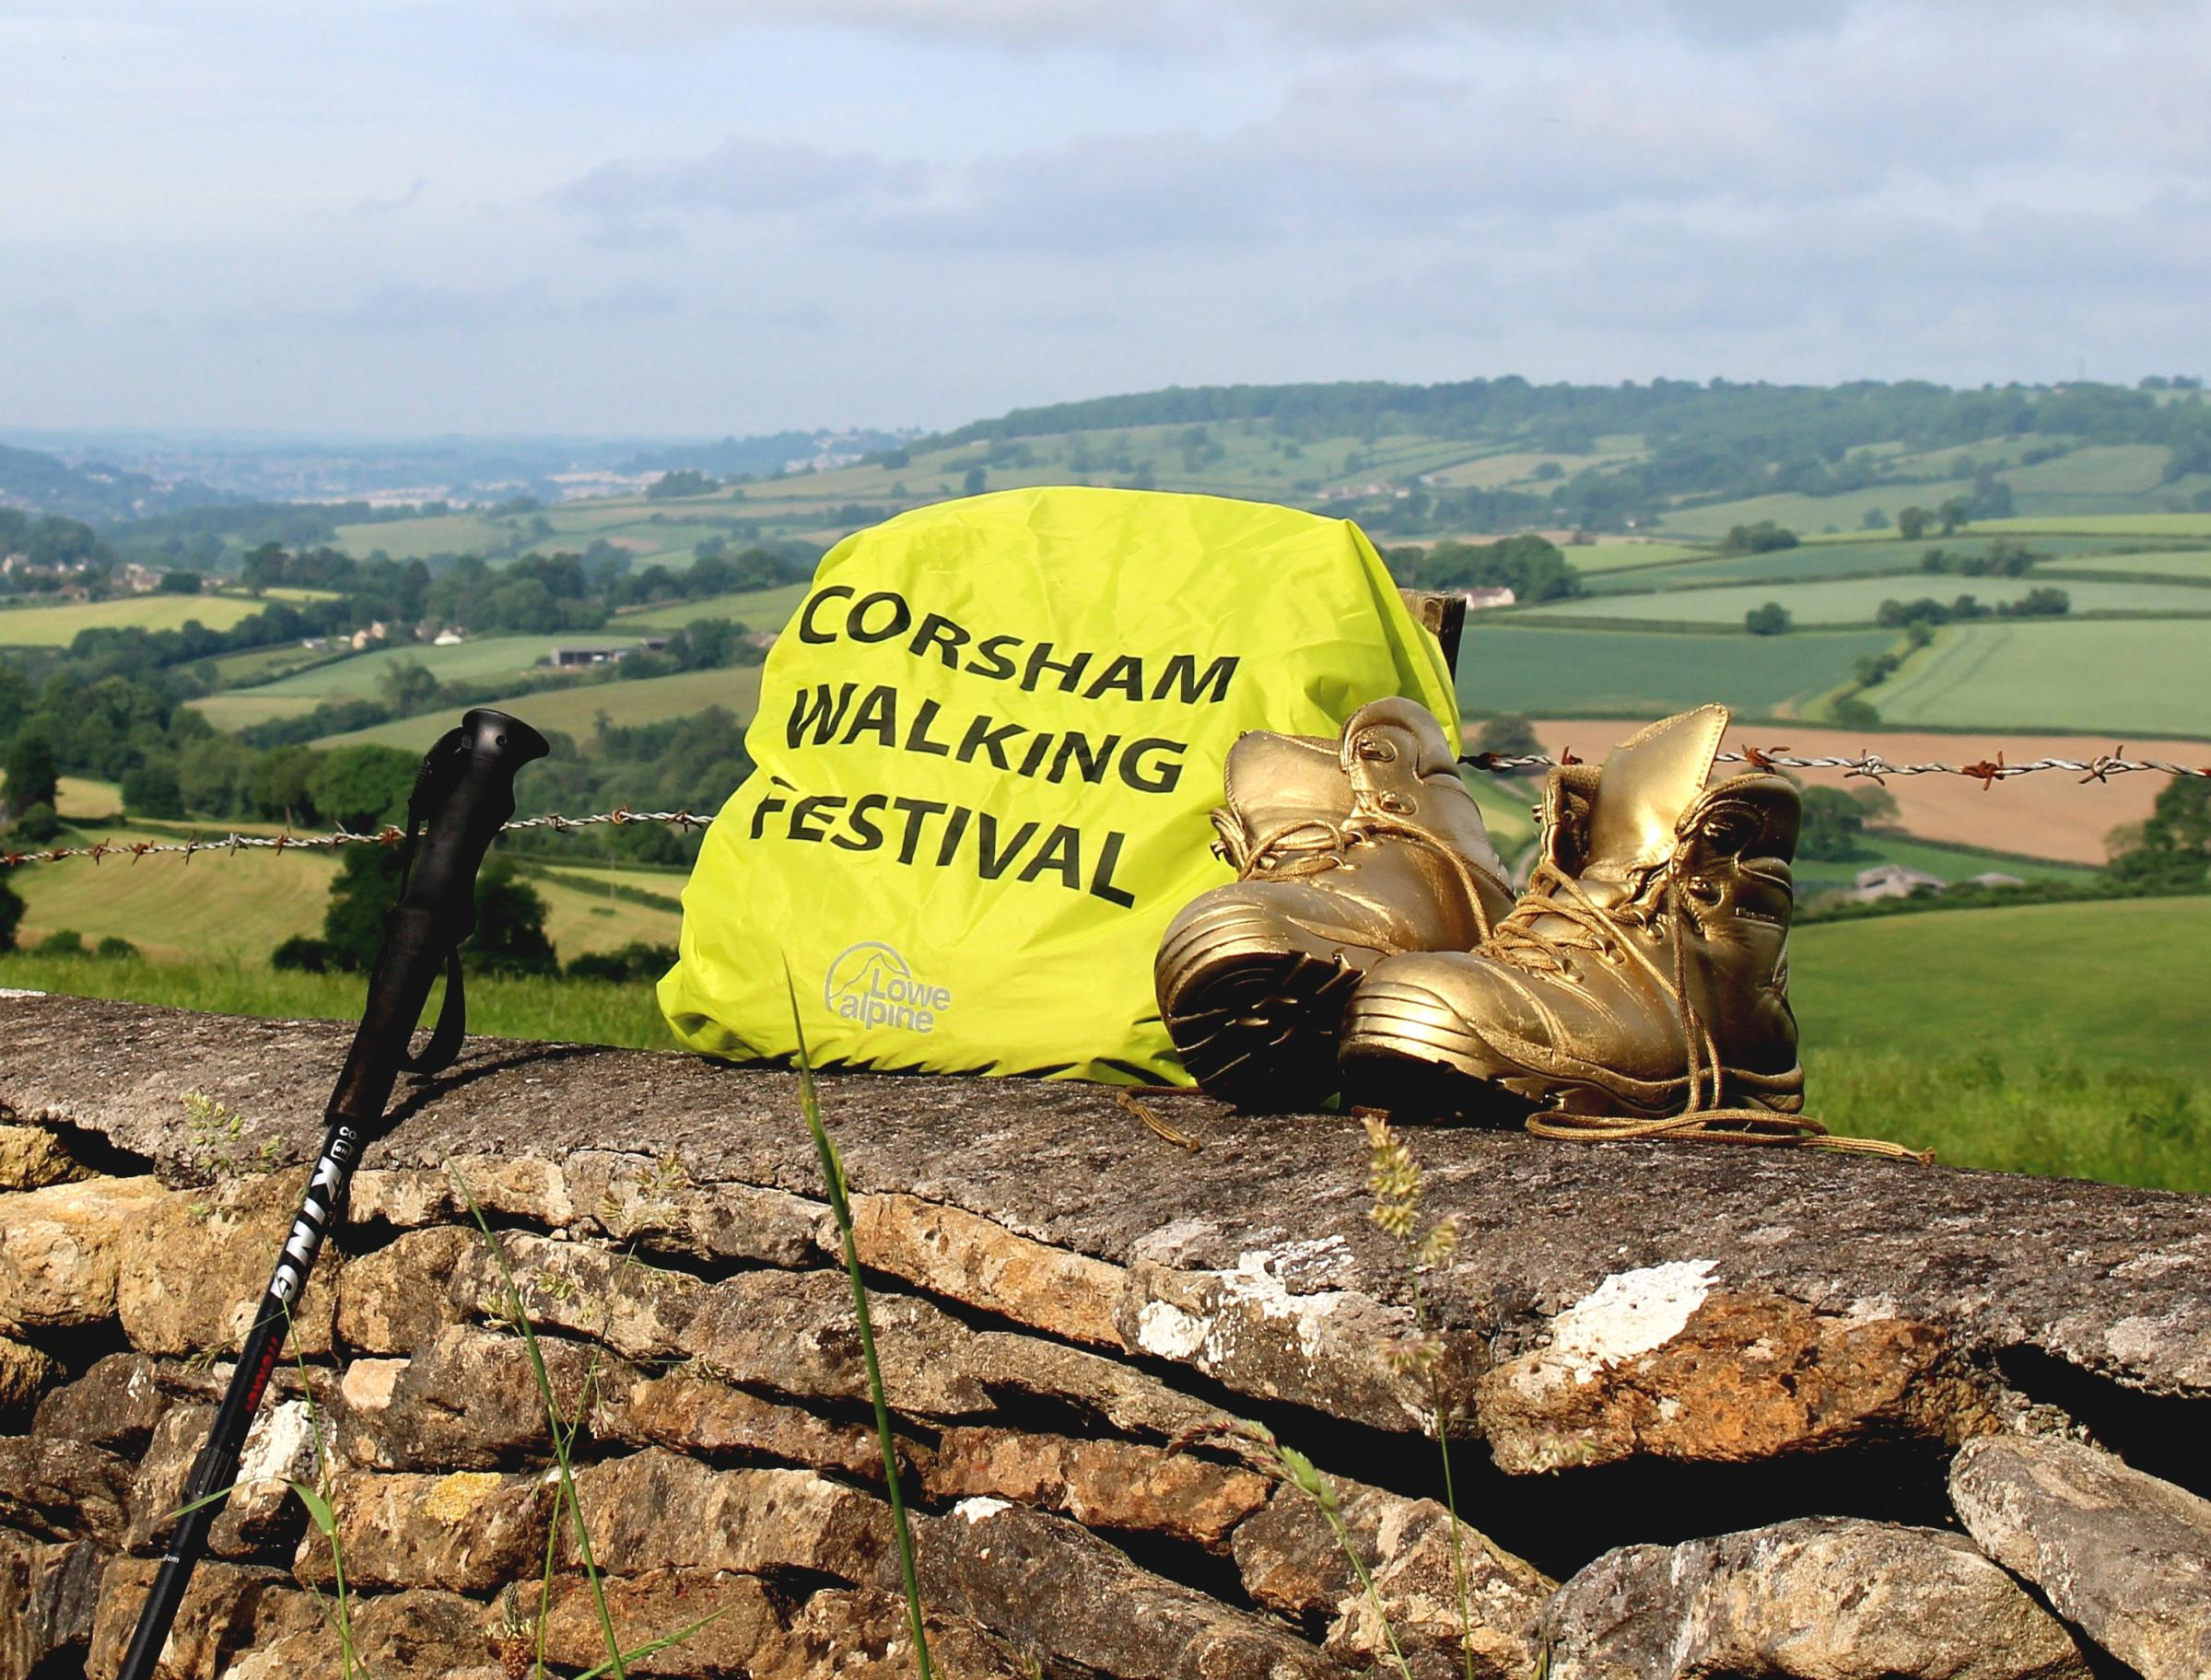 Corsham Walking Festival 2020